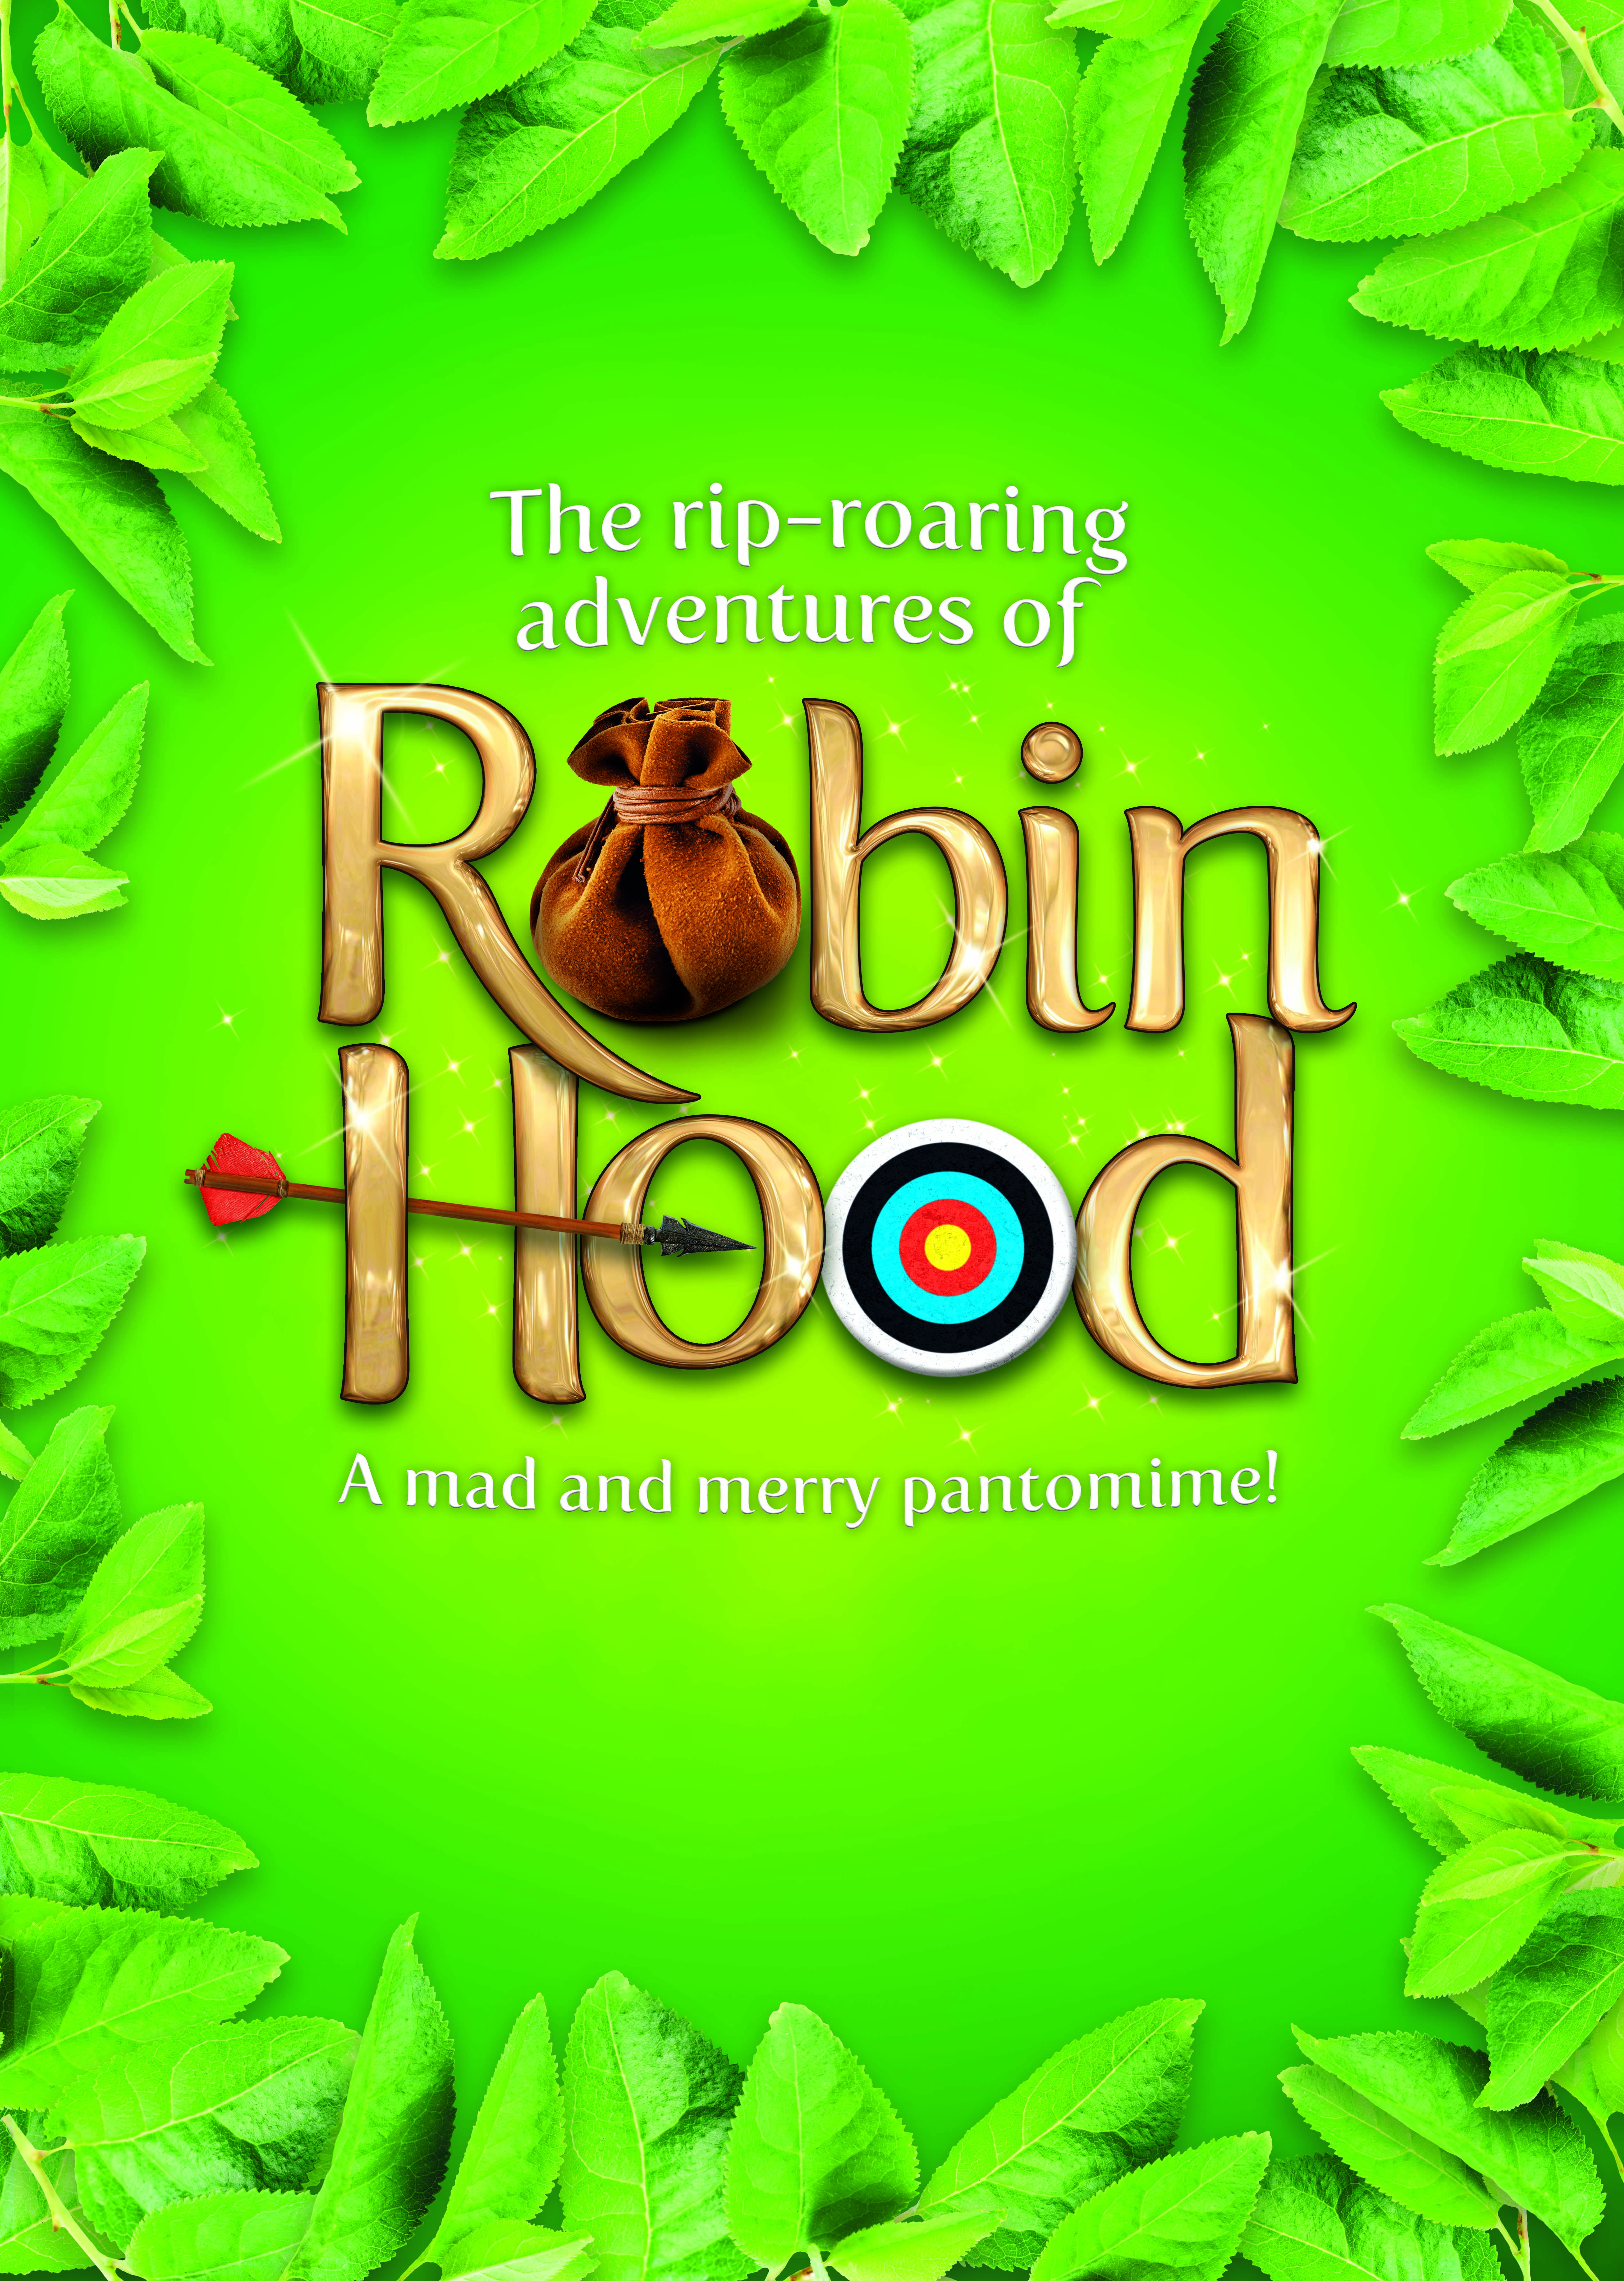 160405 Robin Hood title A2 v1 simplified layers